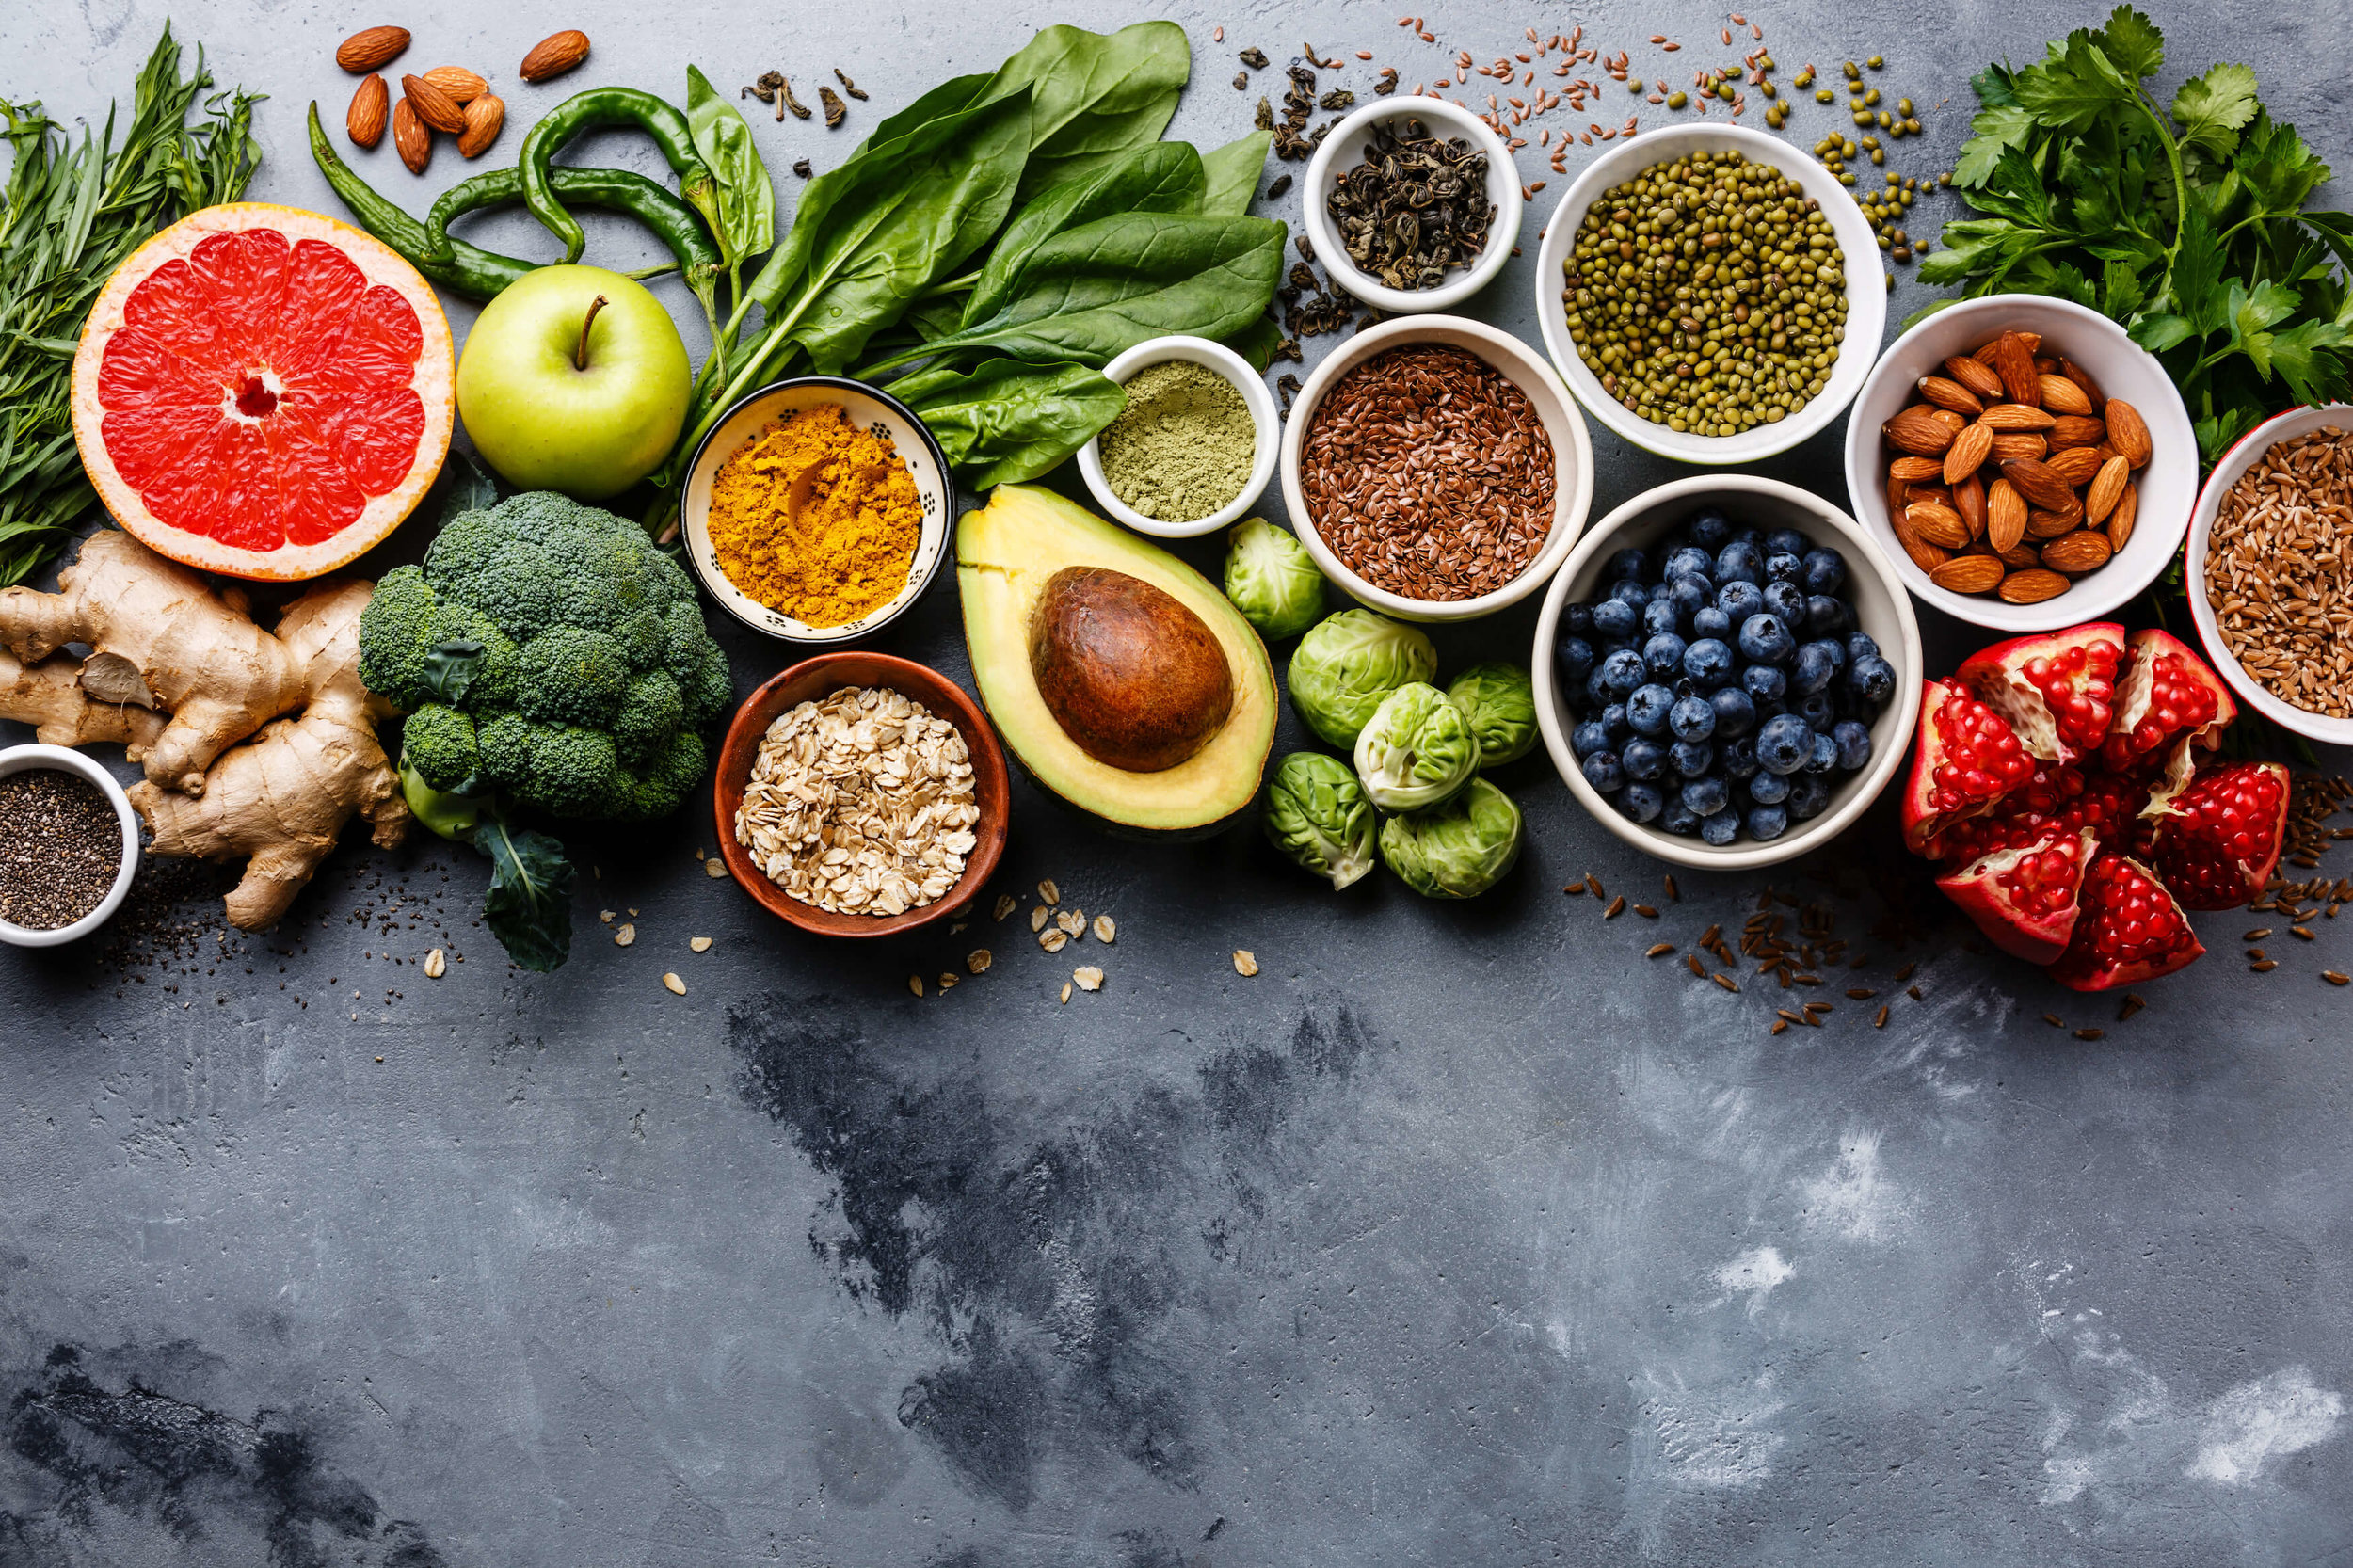 Consultation + Meal Preparation - In addition to the Consultation and personalized client information package, you will receive freshly prepared meals, customized to fit your dietary needs.